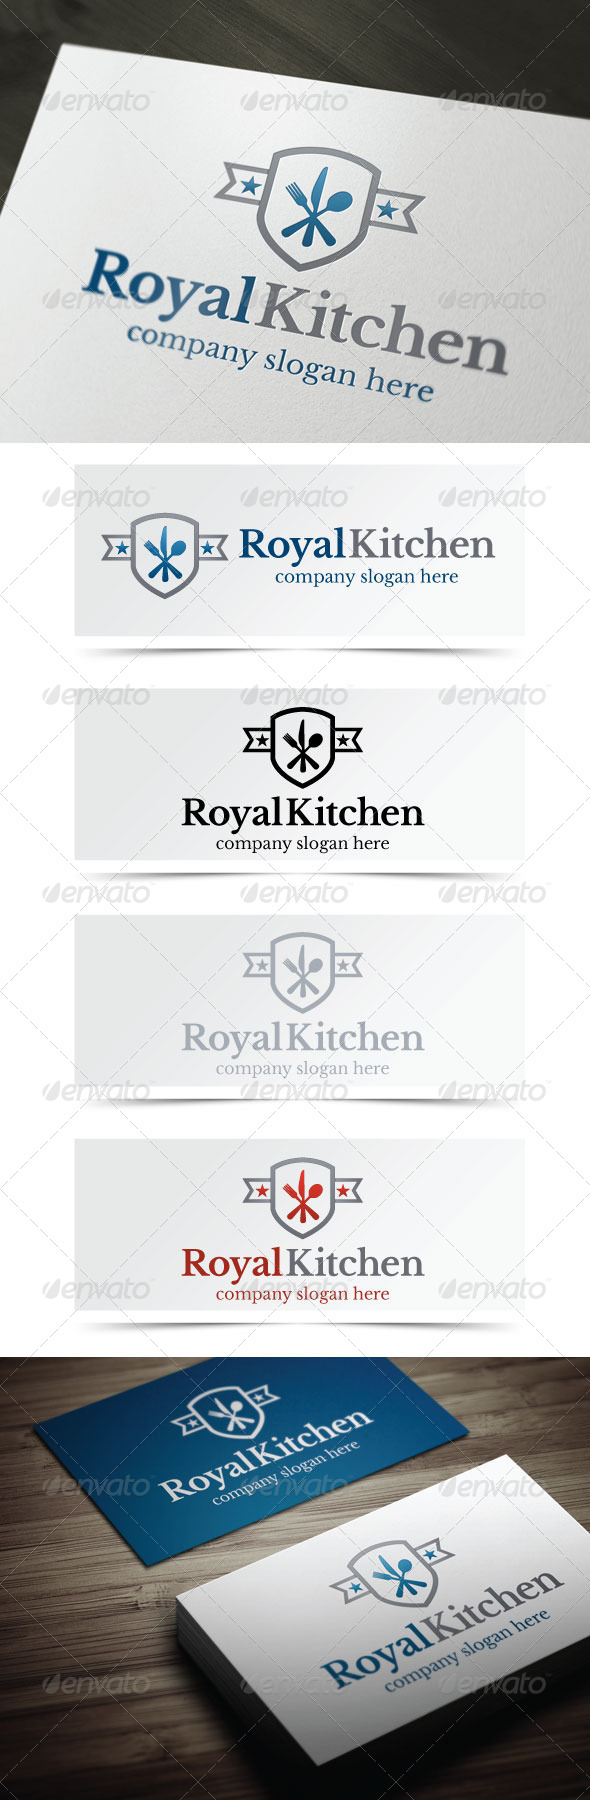 GraphicRiver Royal Kitchen 4945044